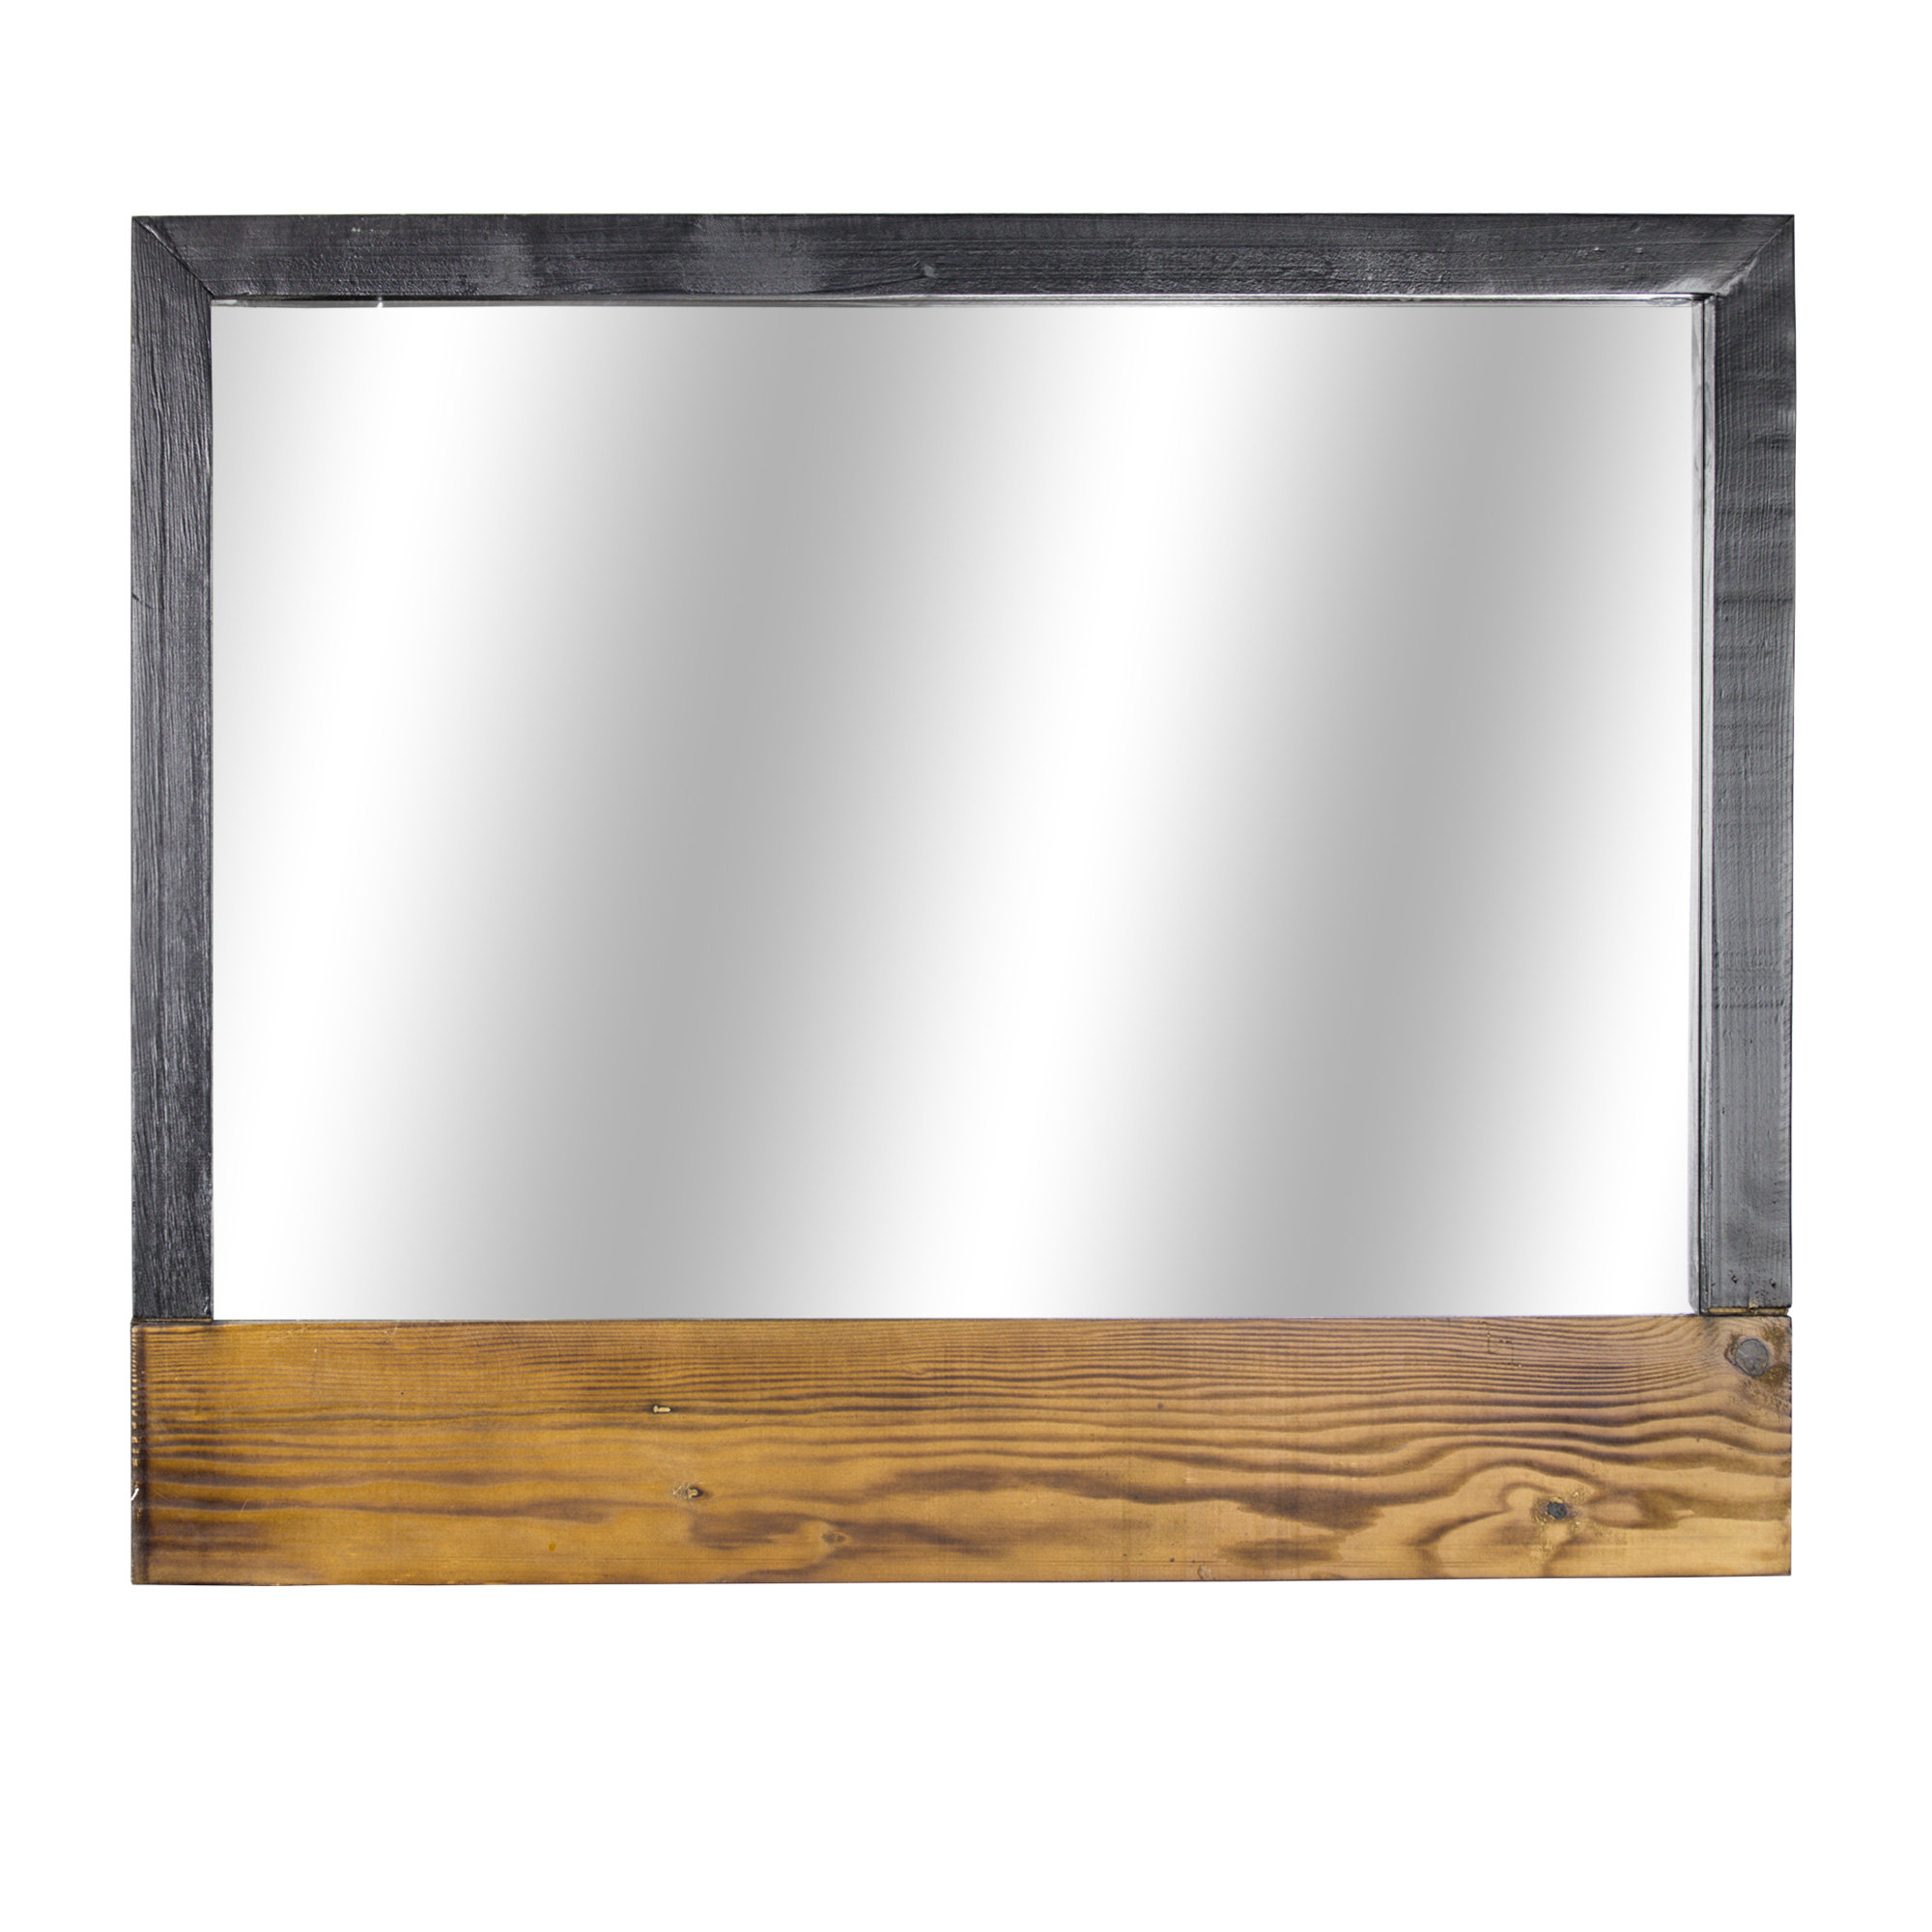 Delicia Decor Rustic Wood Hanging Wall Mirror With Recent Rustic Wood Wall Mirrors (View 3 of 20)